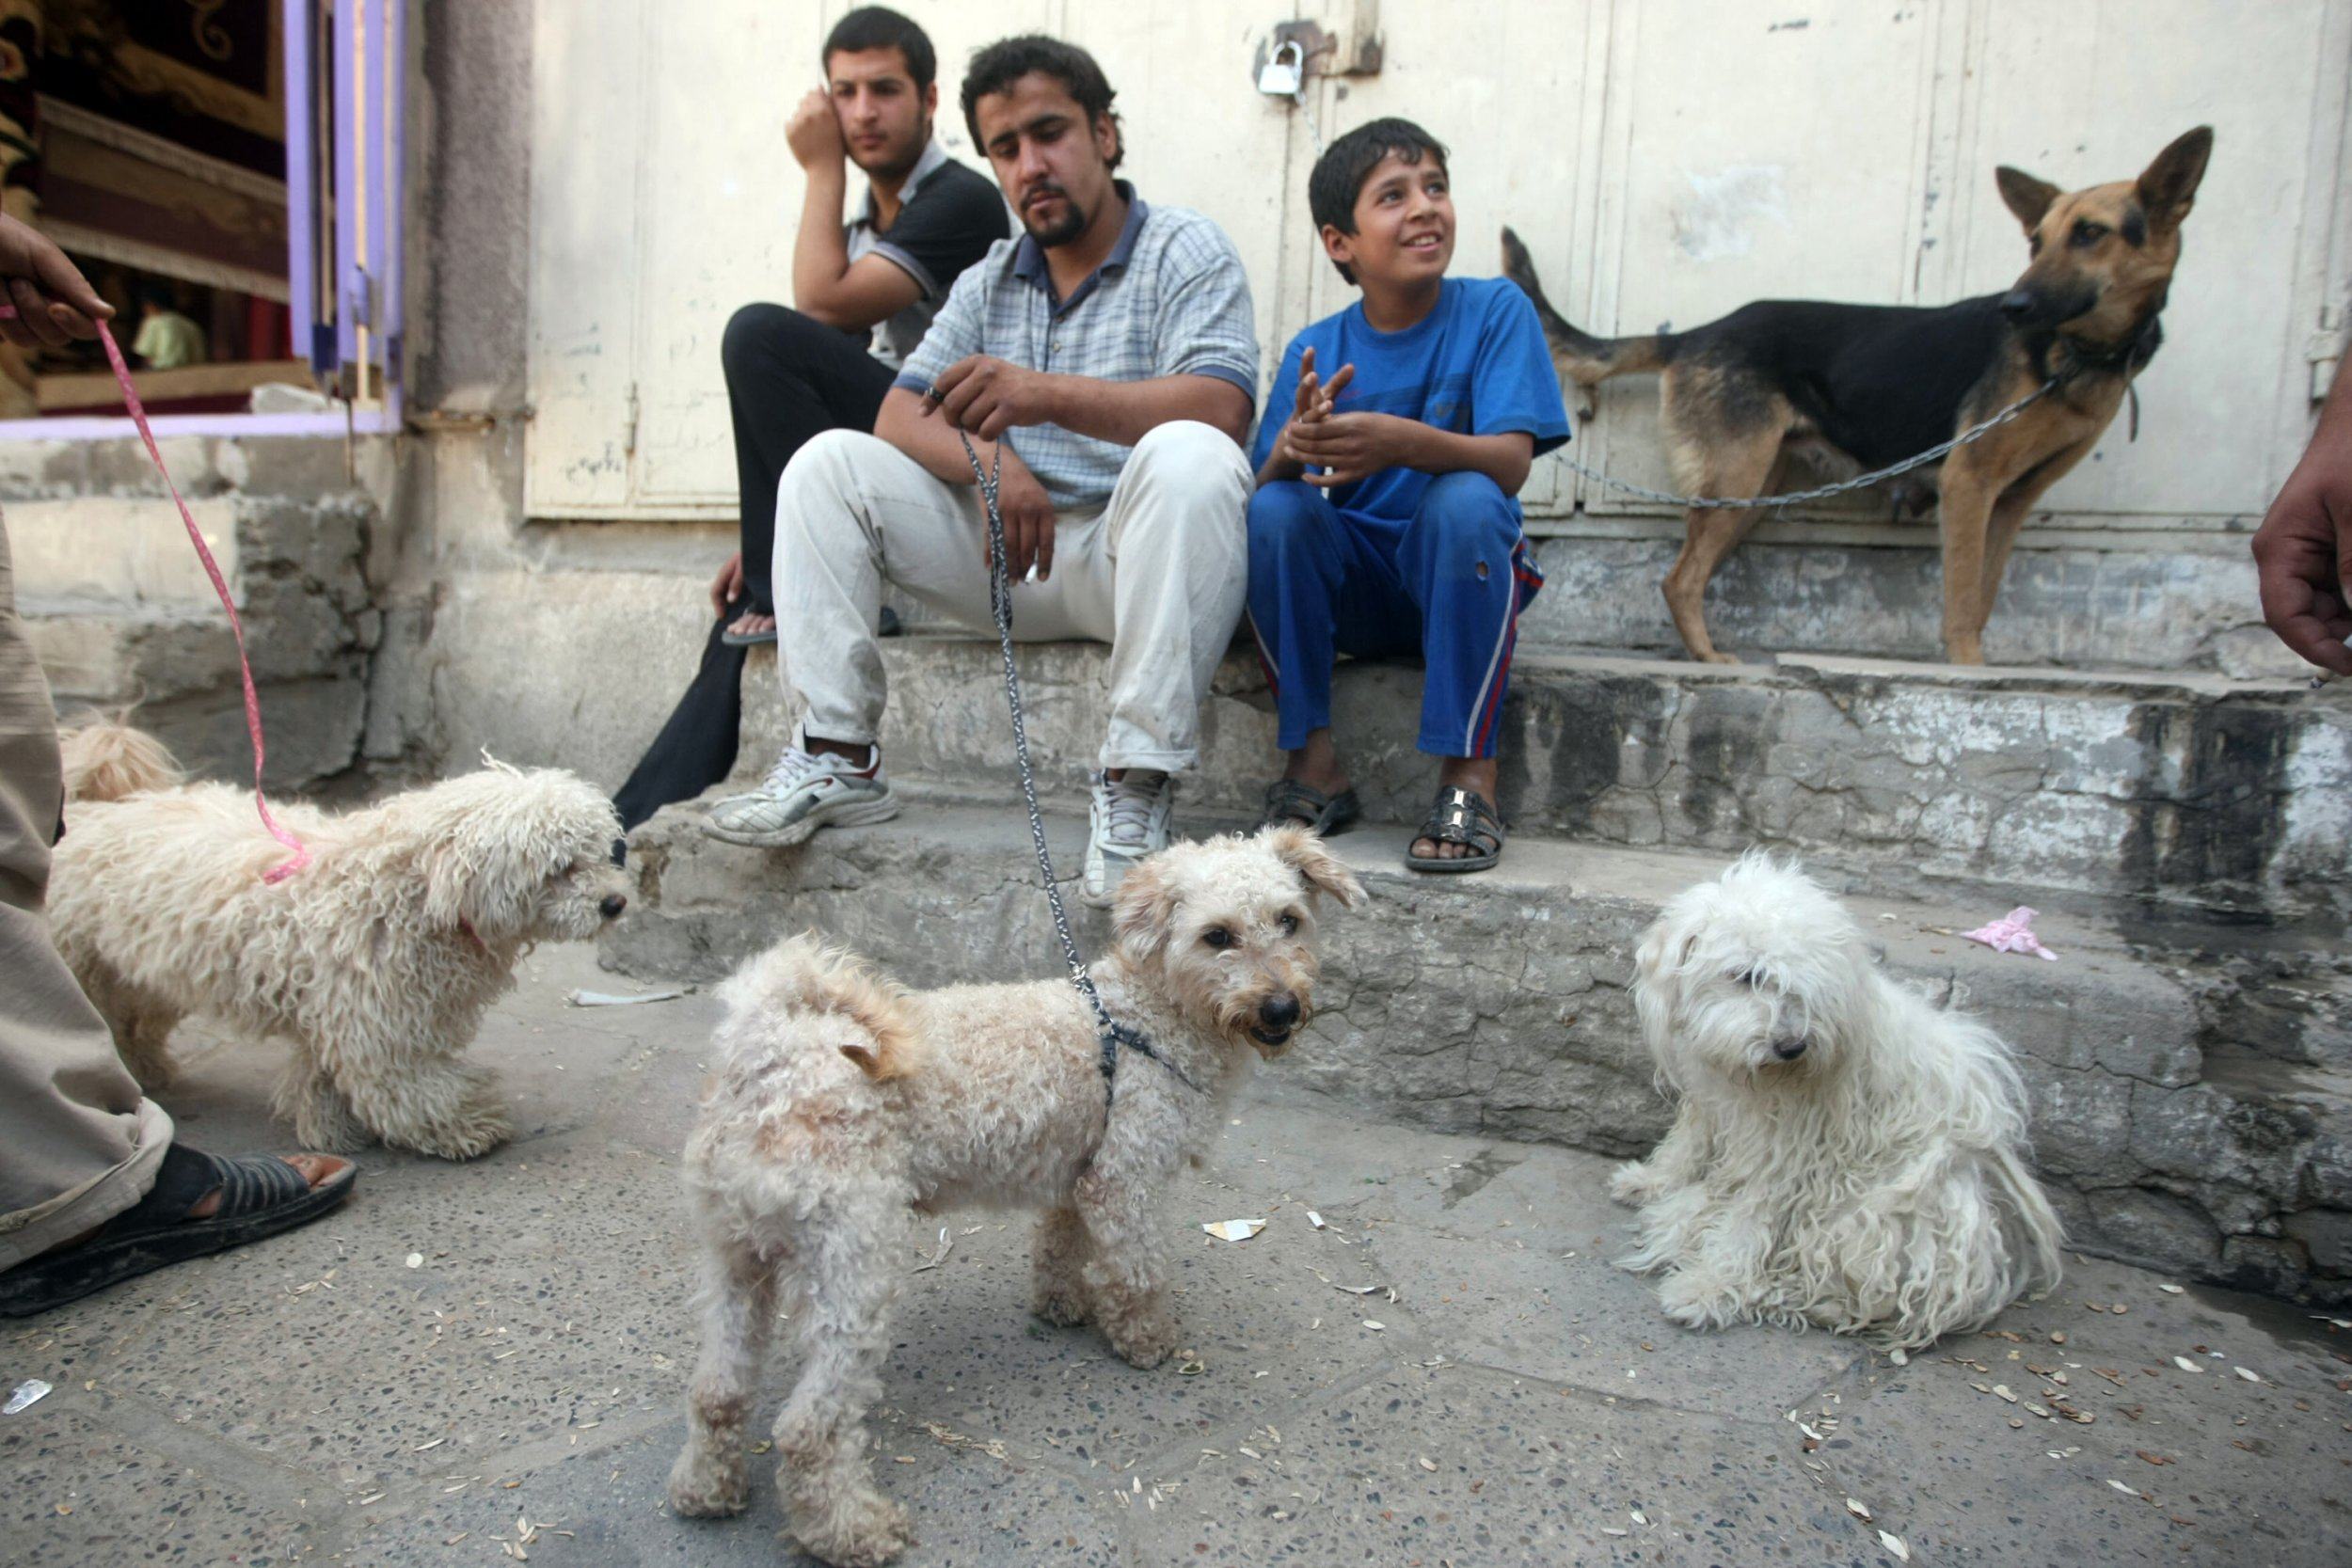 Image of: Friends Merchants Display Foreign Dogs For Sale At The Alghazel Animal Market In Baghdad Iraq On May 21 2010 Iraqs Fondness For Canine Companionship Began Iraqs Unlikely Love Affair With Cuddly Canines